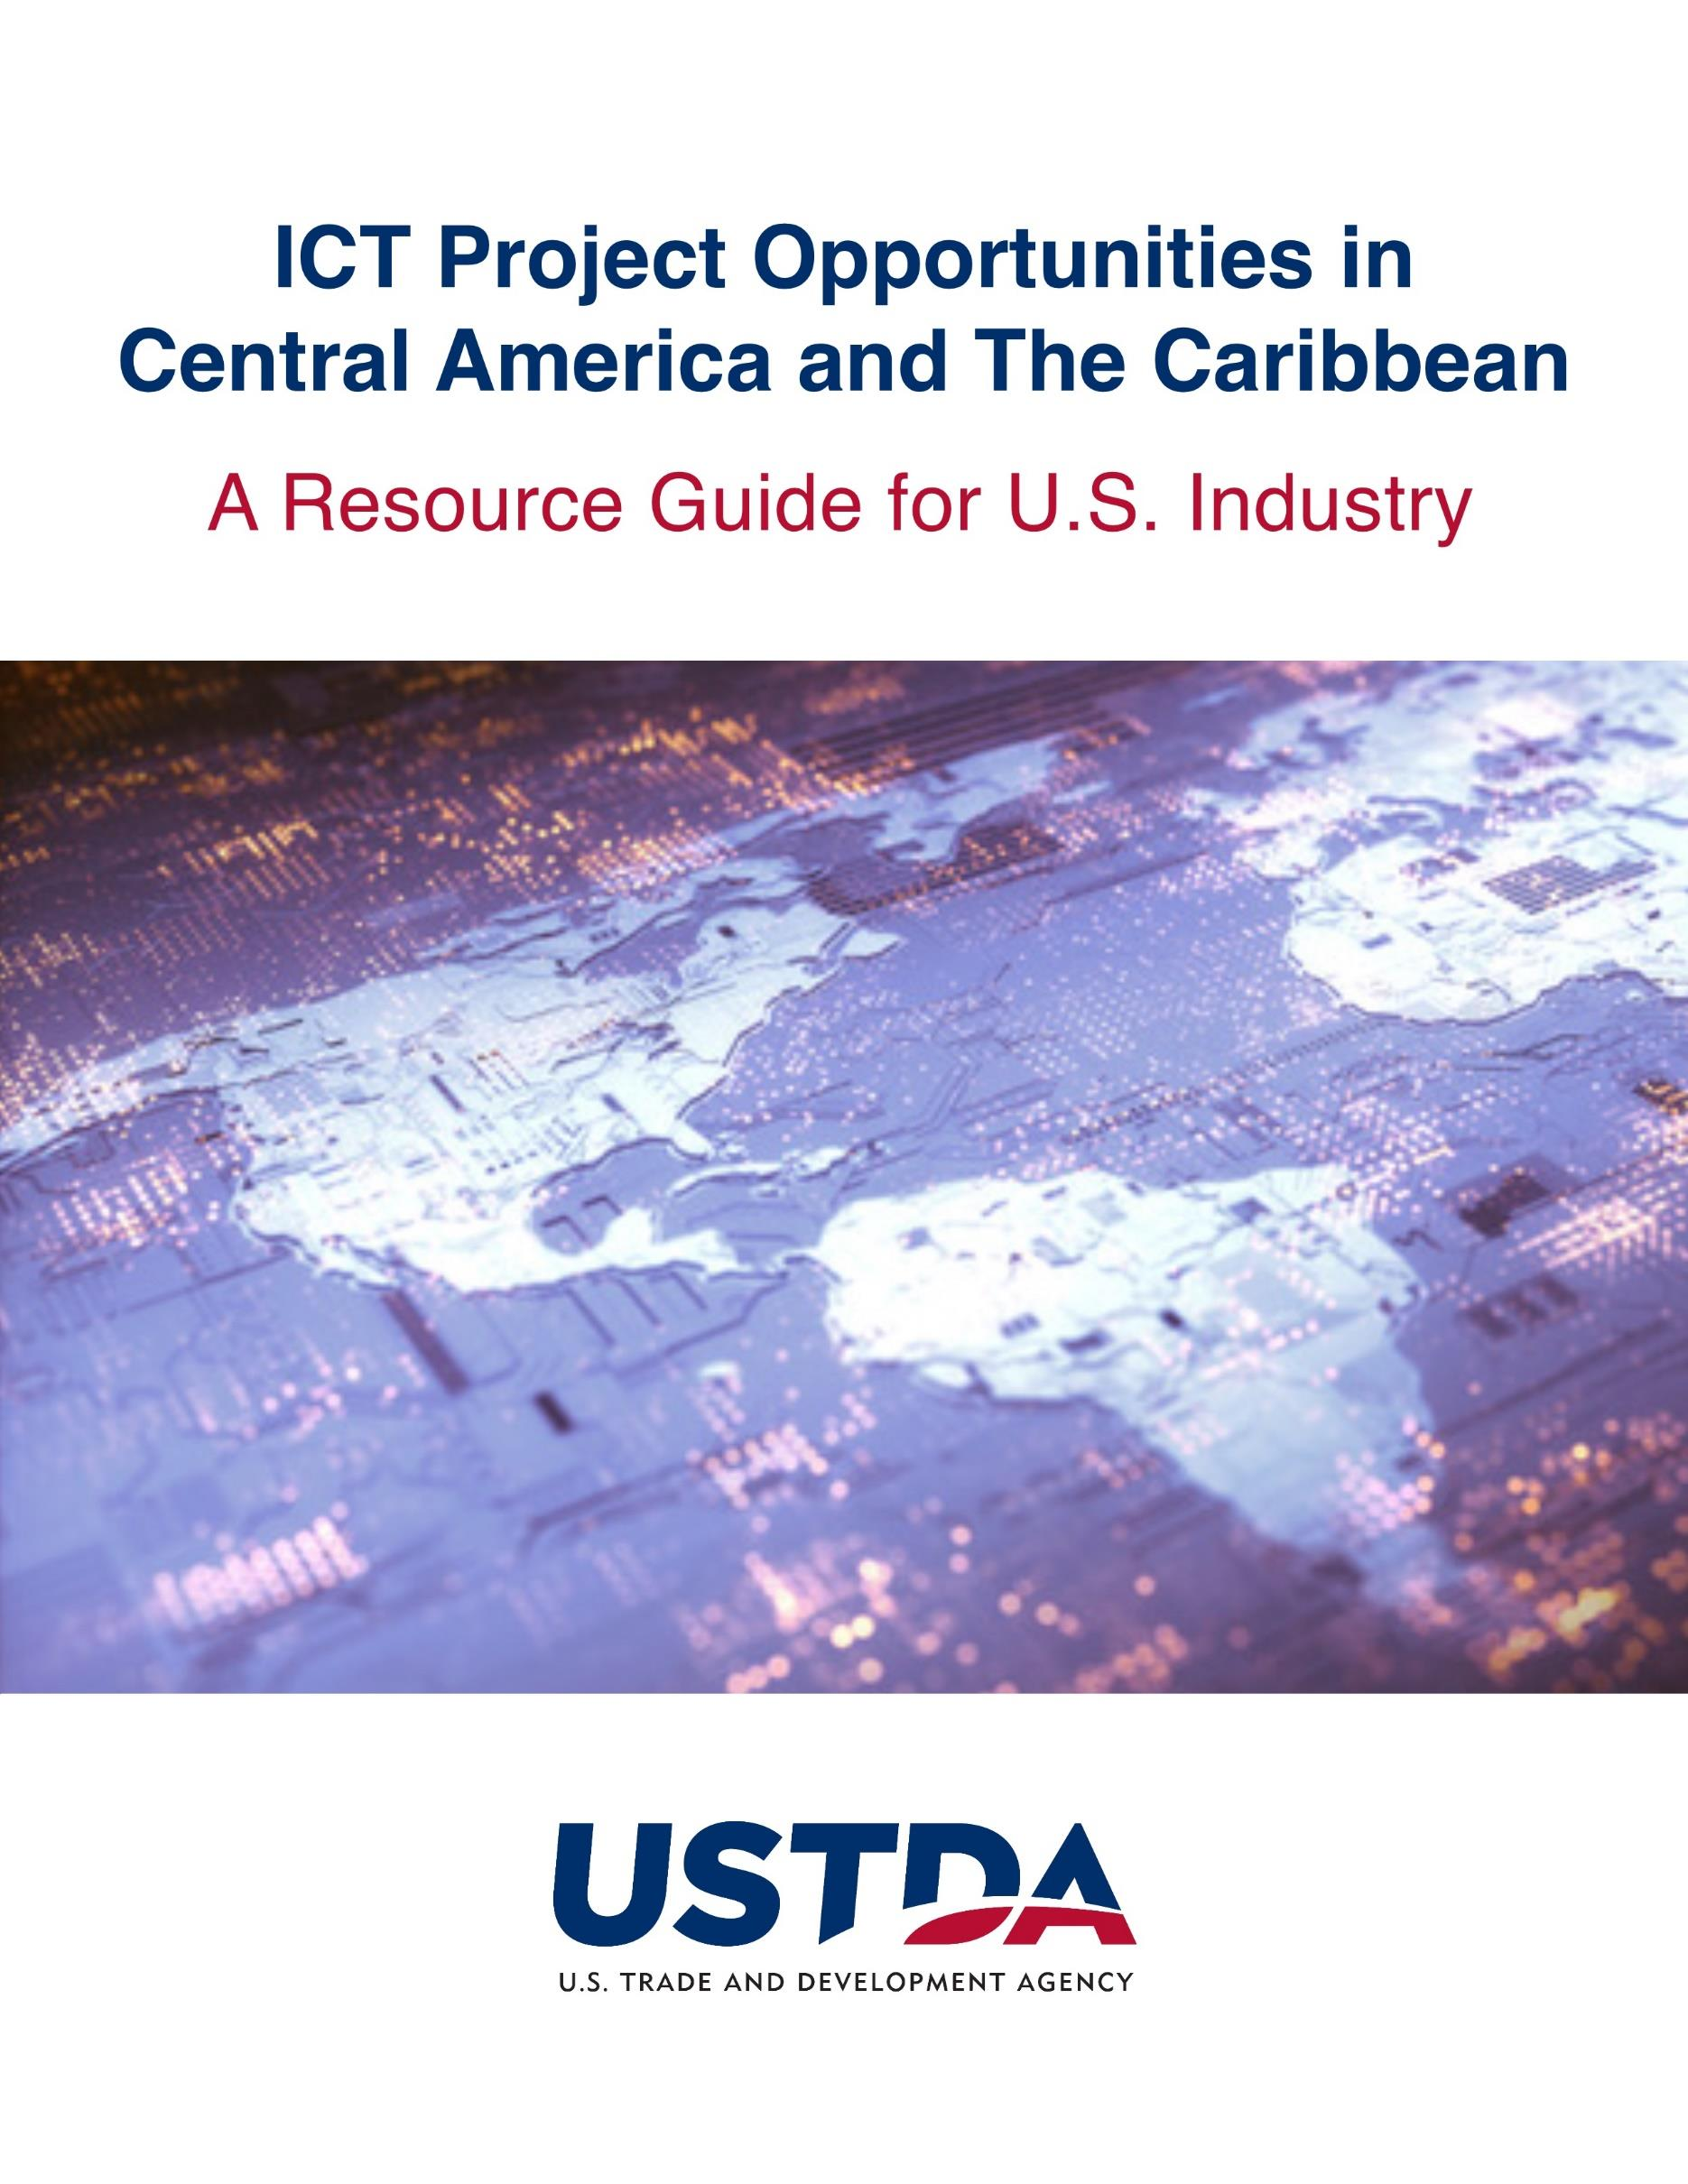 Cover image for USTDA's ICT Resource Guide for Central America and the Caribbean